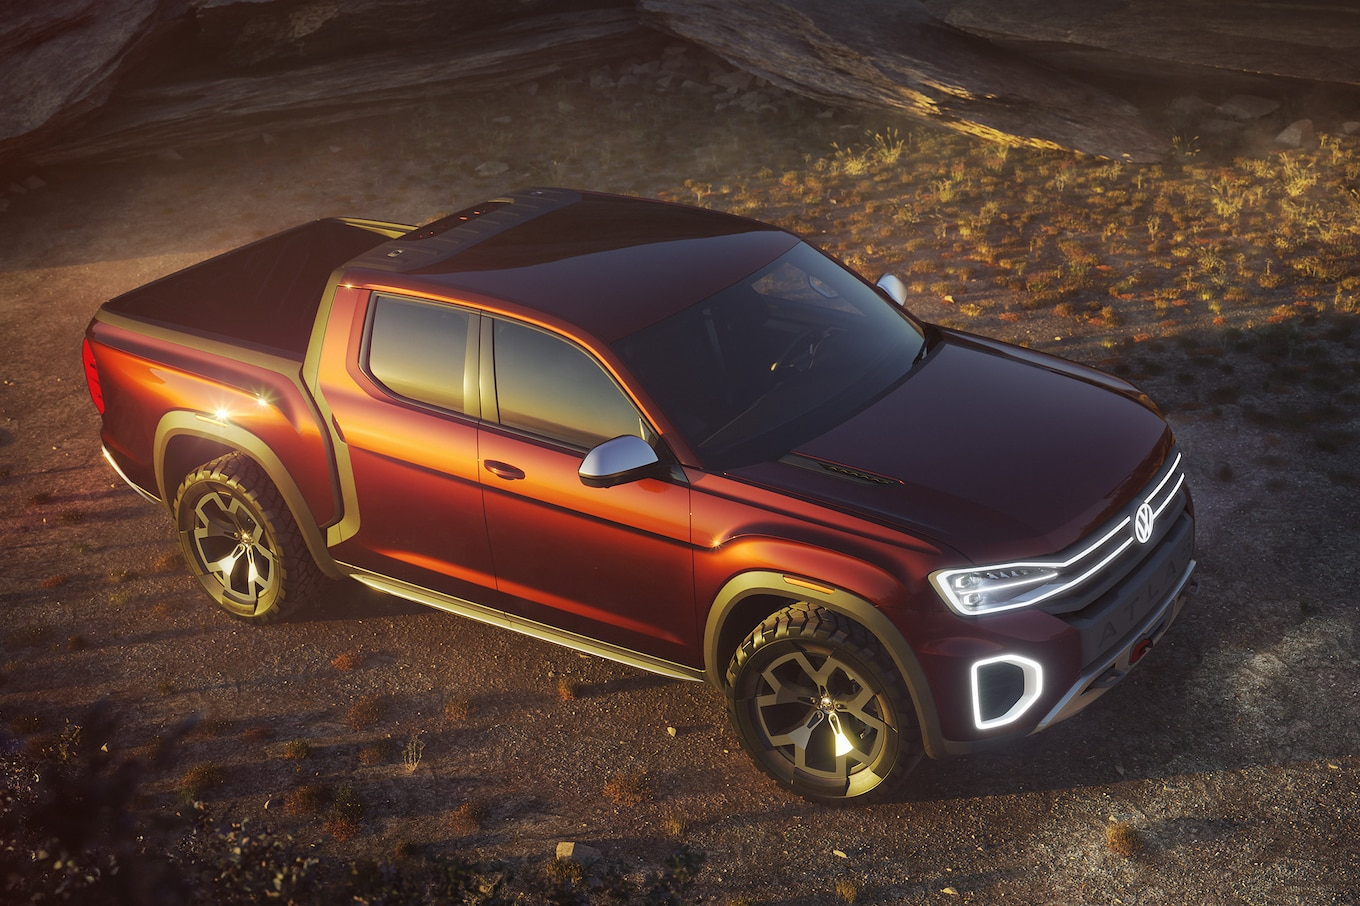 Pick Up The Volkswagen Tanoak Is An Atlas Based Pickup Truck